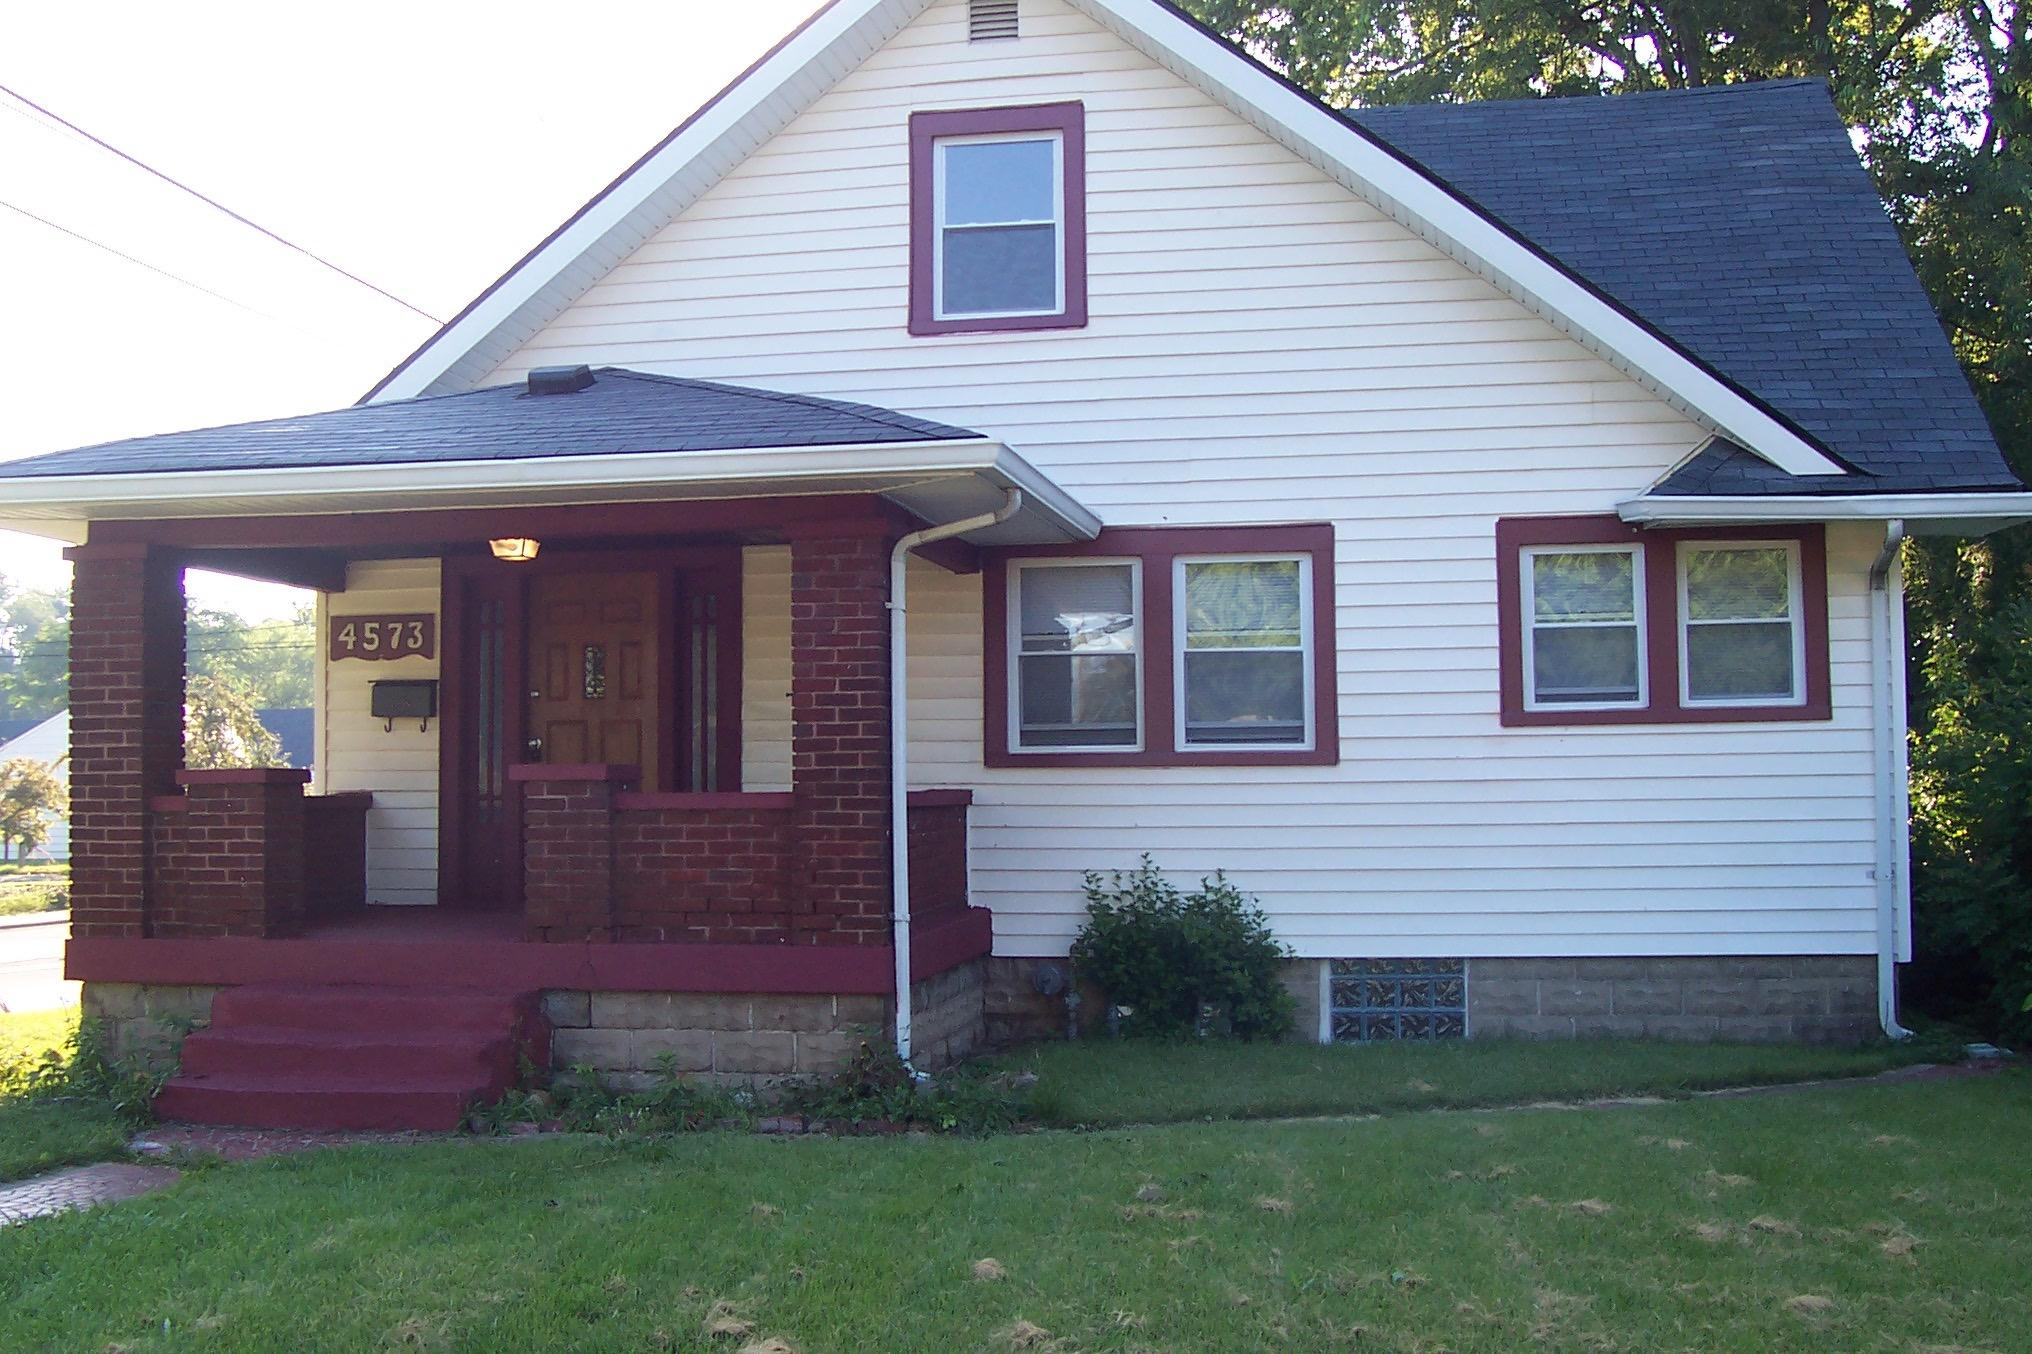 4573 Winthrop Ave For Rent Indianapolis IN